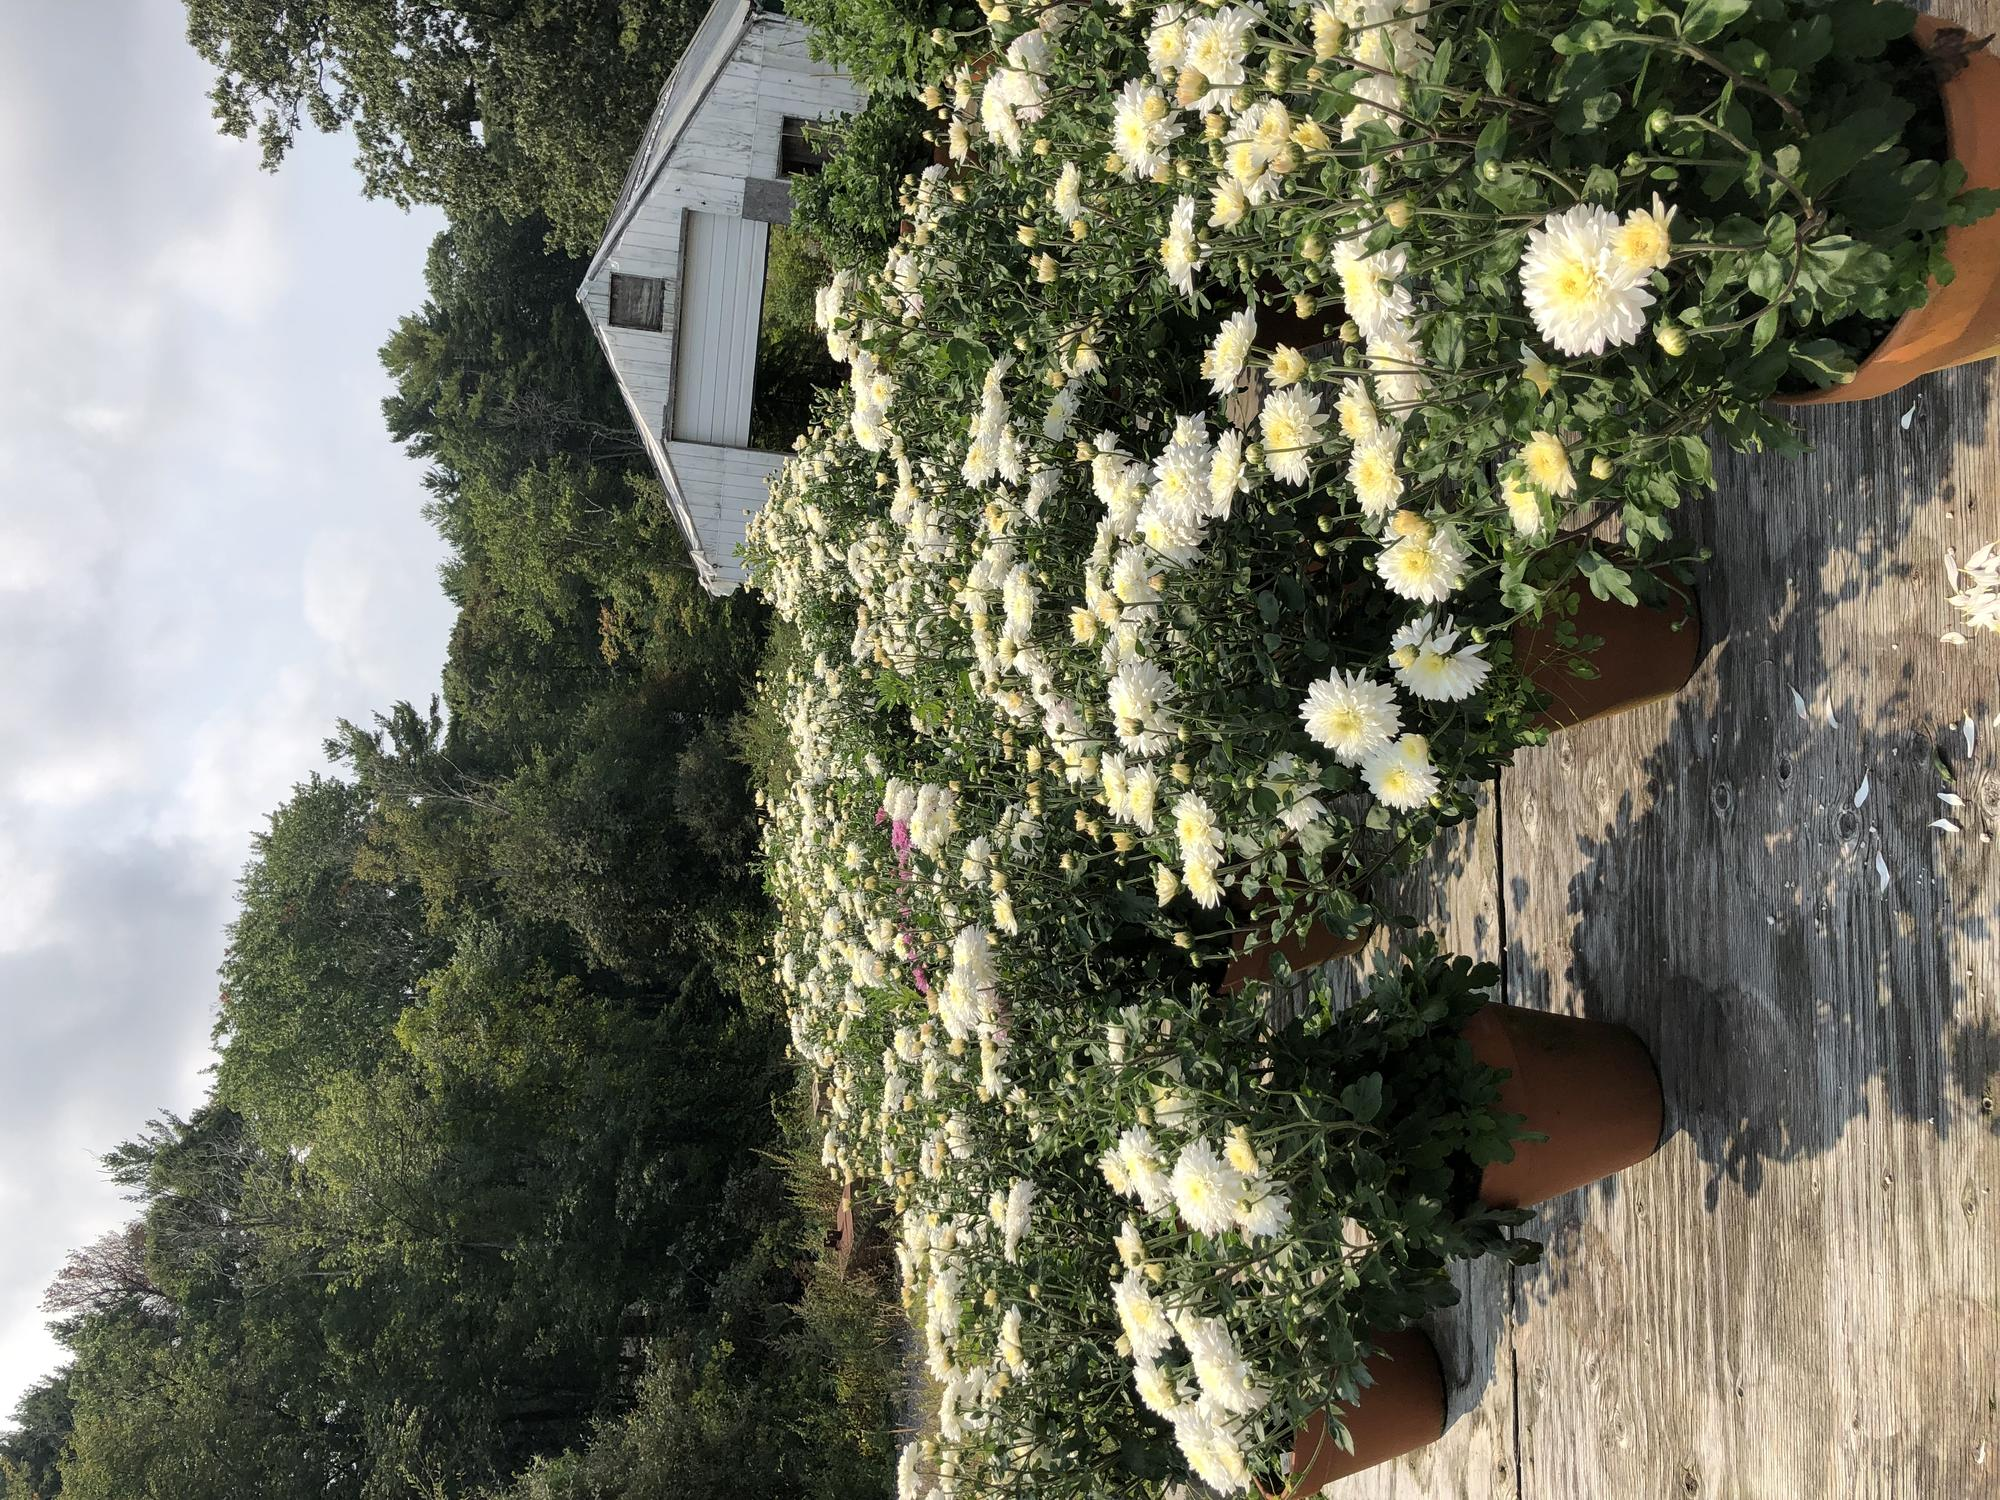 Bloomed Chrysanthemums in pots outside.